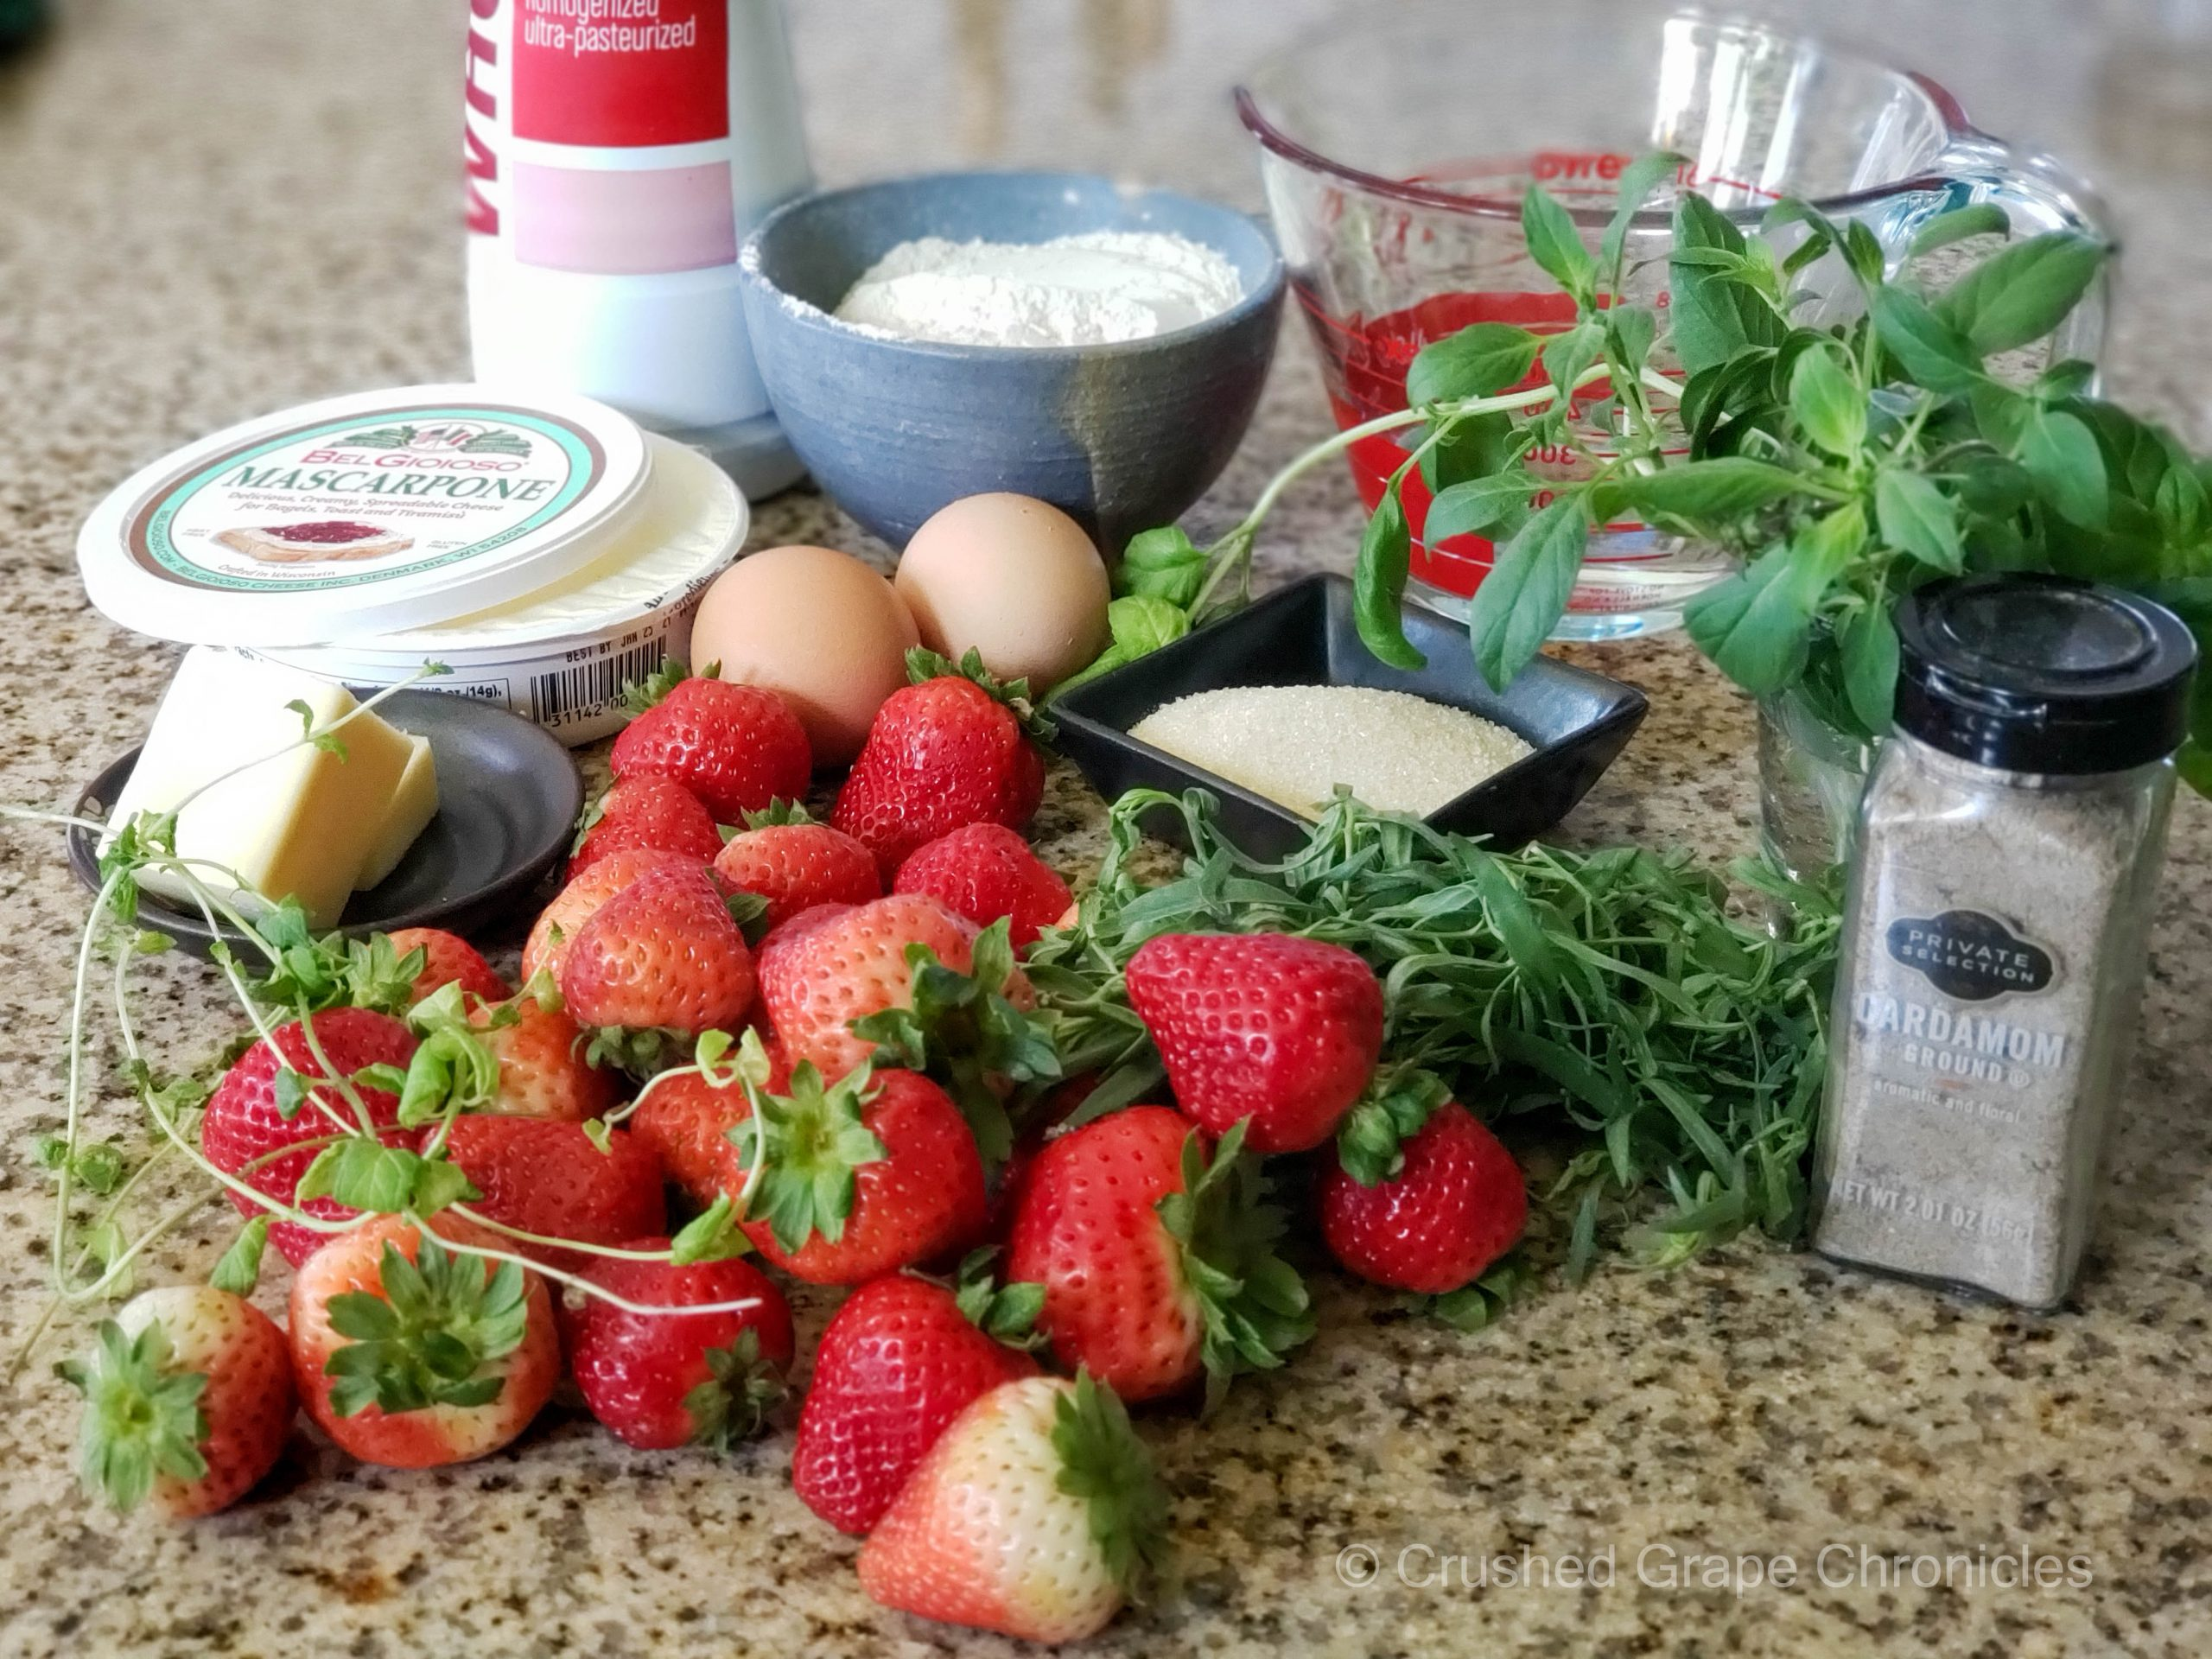 Ingredients for strawberry mascarpone crepes